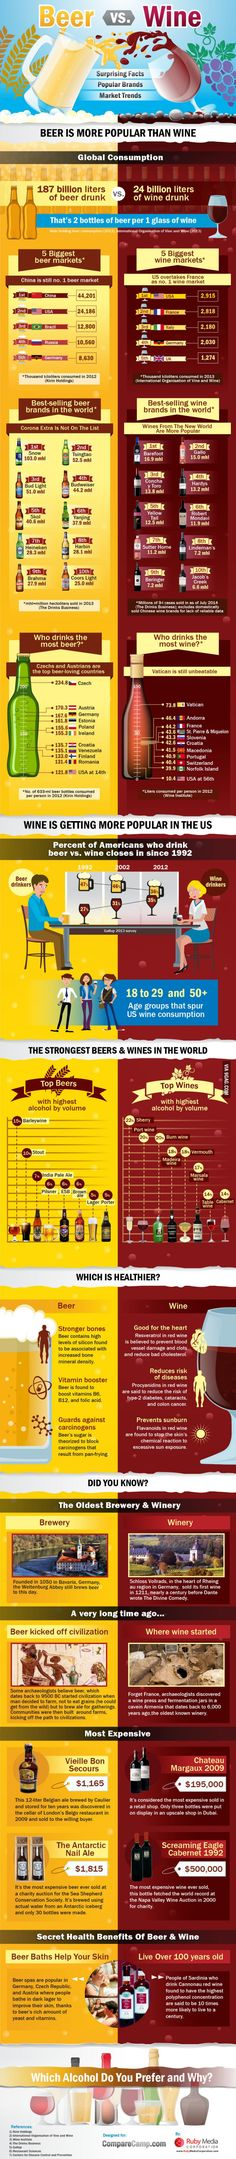 [INFOGRAPHIC] Beer versus Wine - Surprising facts - Popular brands - Market trends